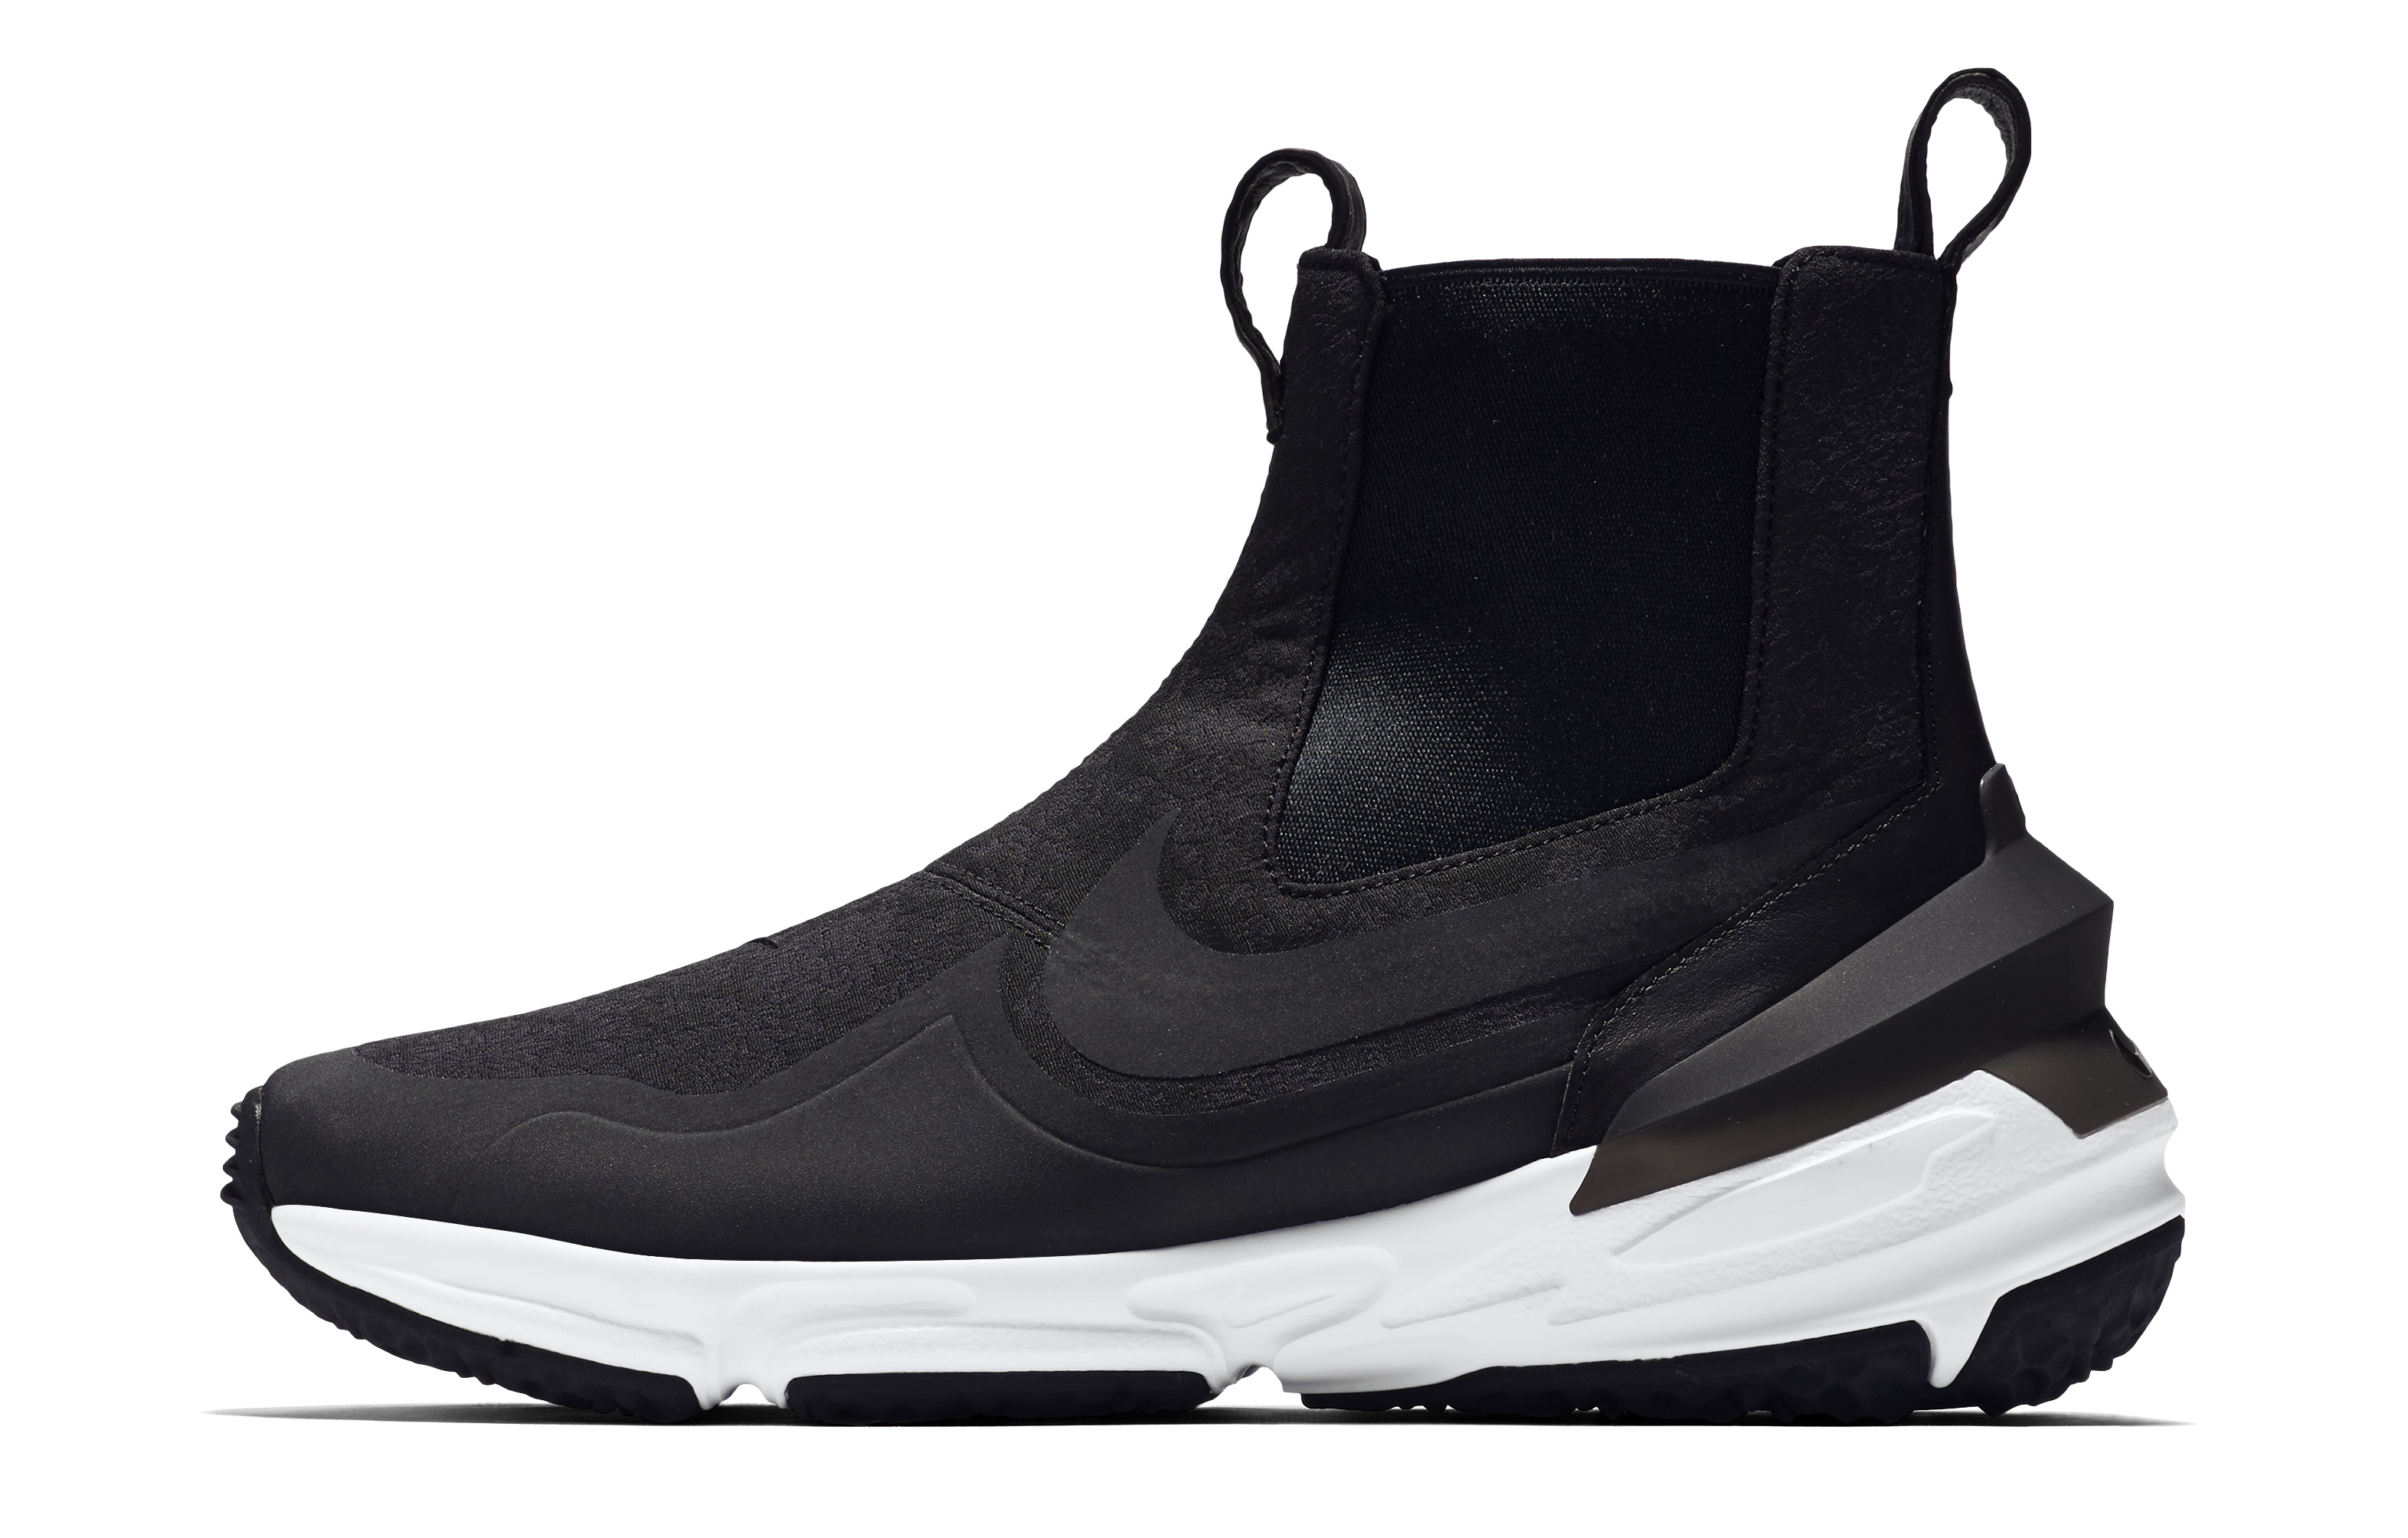 low priced b5be0 2a7da Tisci Nike Zoom Legend Chelsea Boot Medial